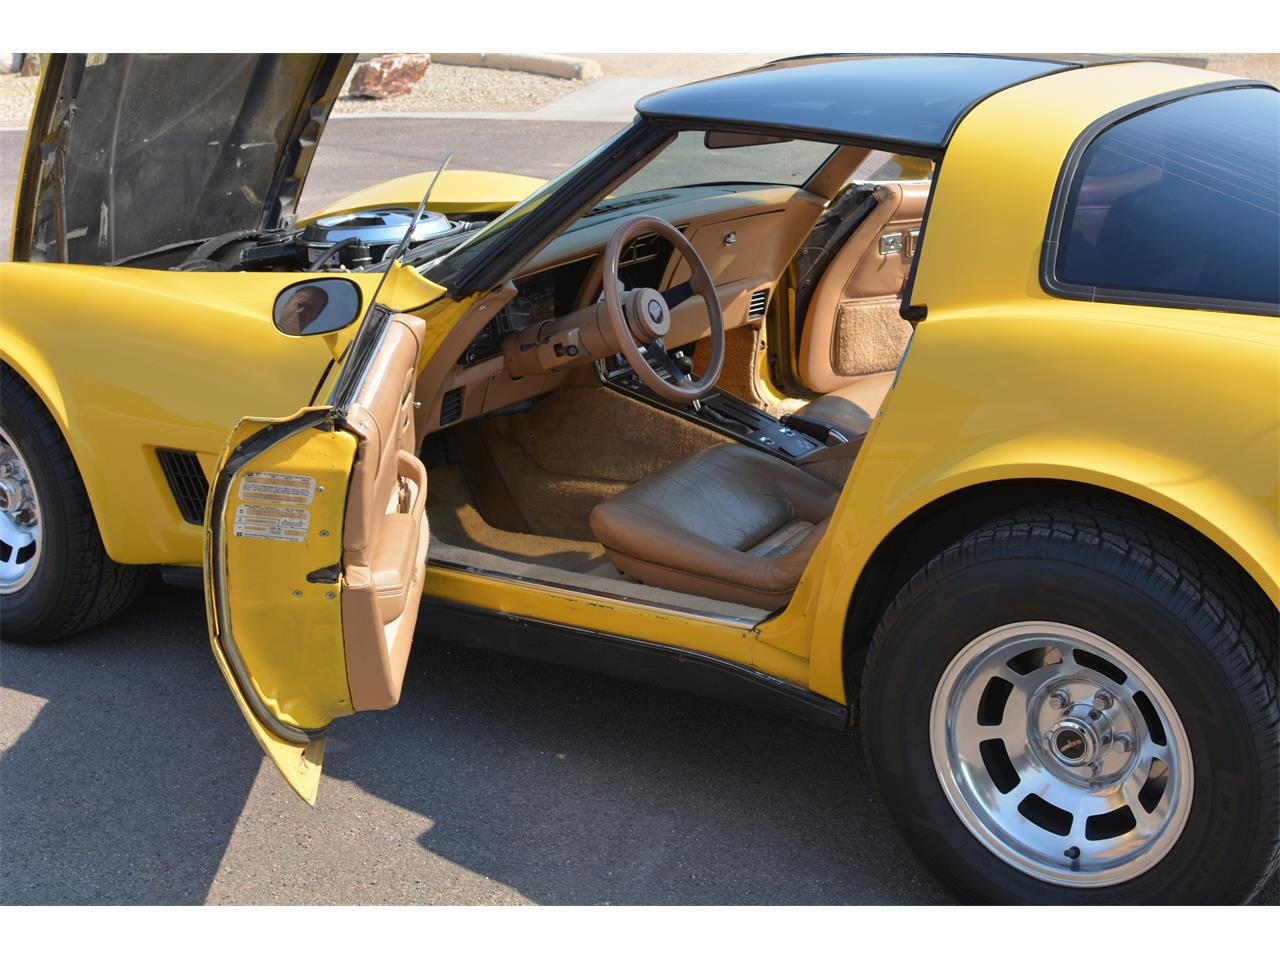 Large Picture of '81 Corvette - $14,000.00 Offered by a Private Seller - LGQ7